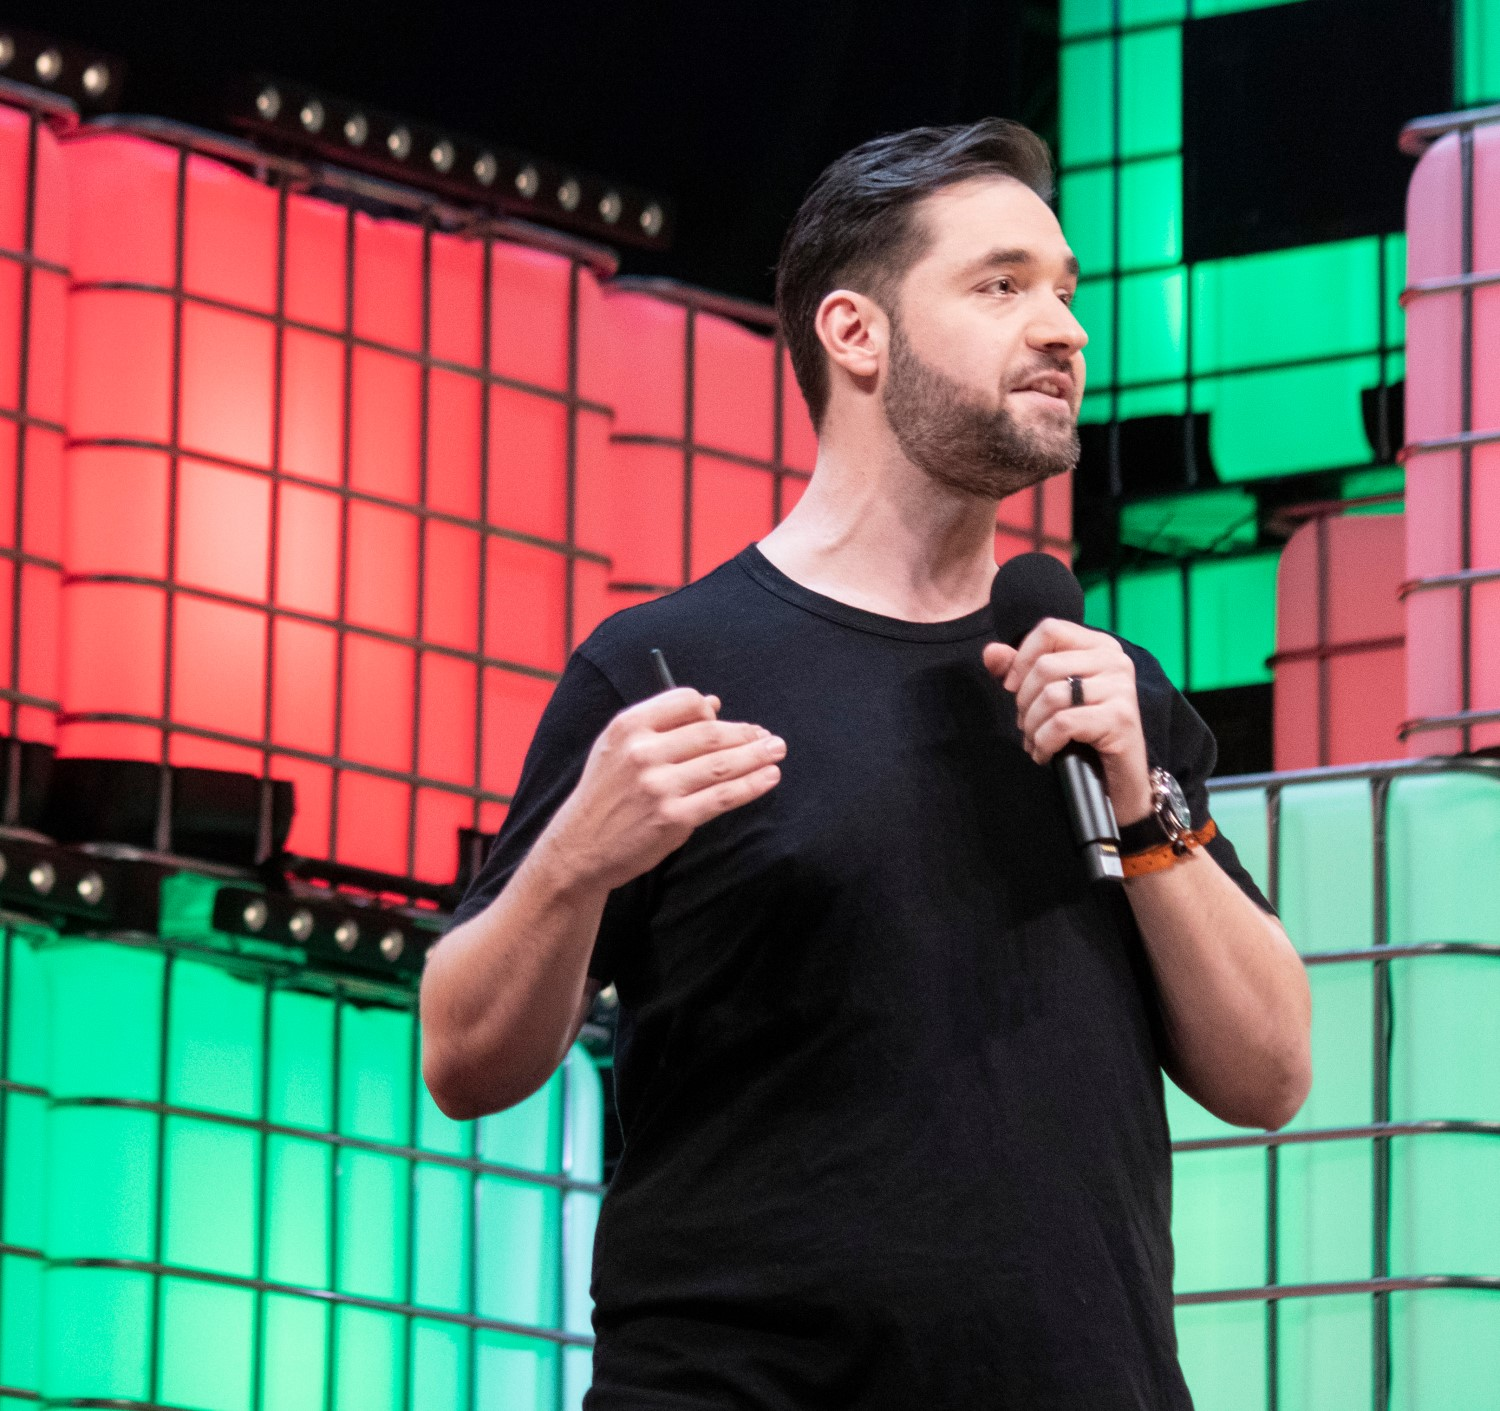 Reddit's Alexis Ohanian Leads $5.3M Round for Web3 Startup QuickNode